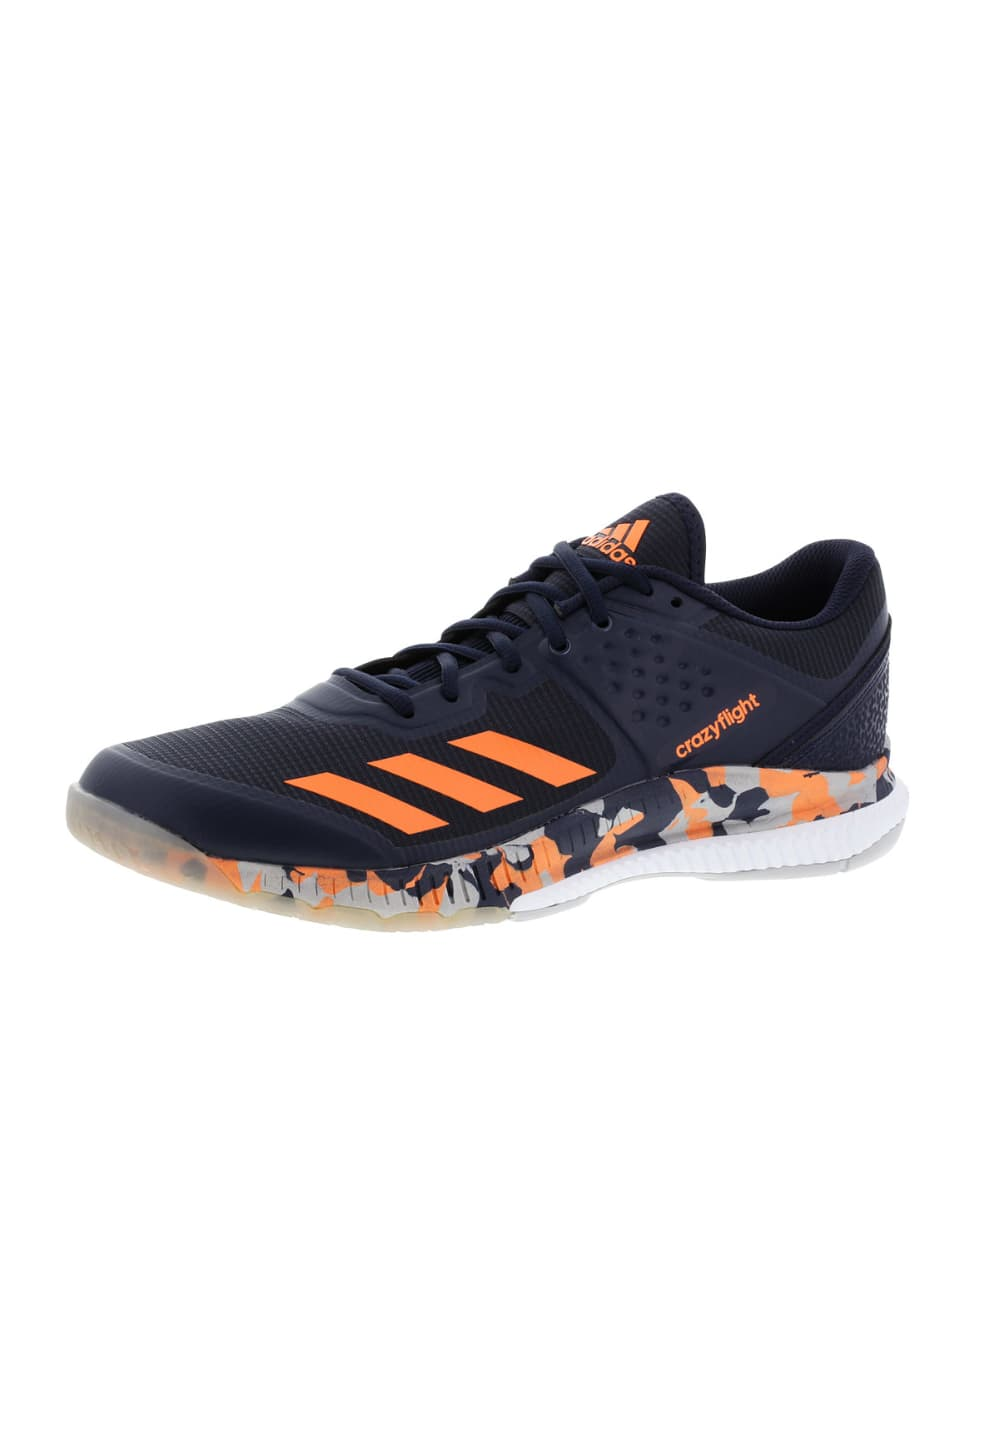 Multicolore Adidas Crazyflight Bounce De Homme Chaussures Volleyball Pour thdsQr